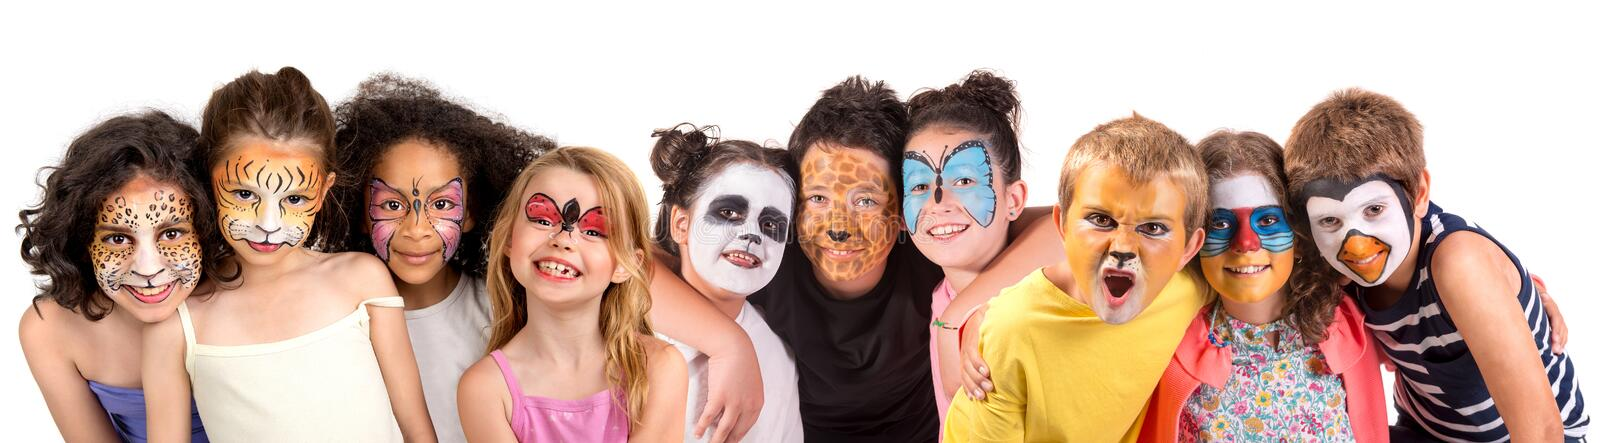 Kids with face-paint royalty free stock images